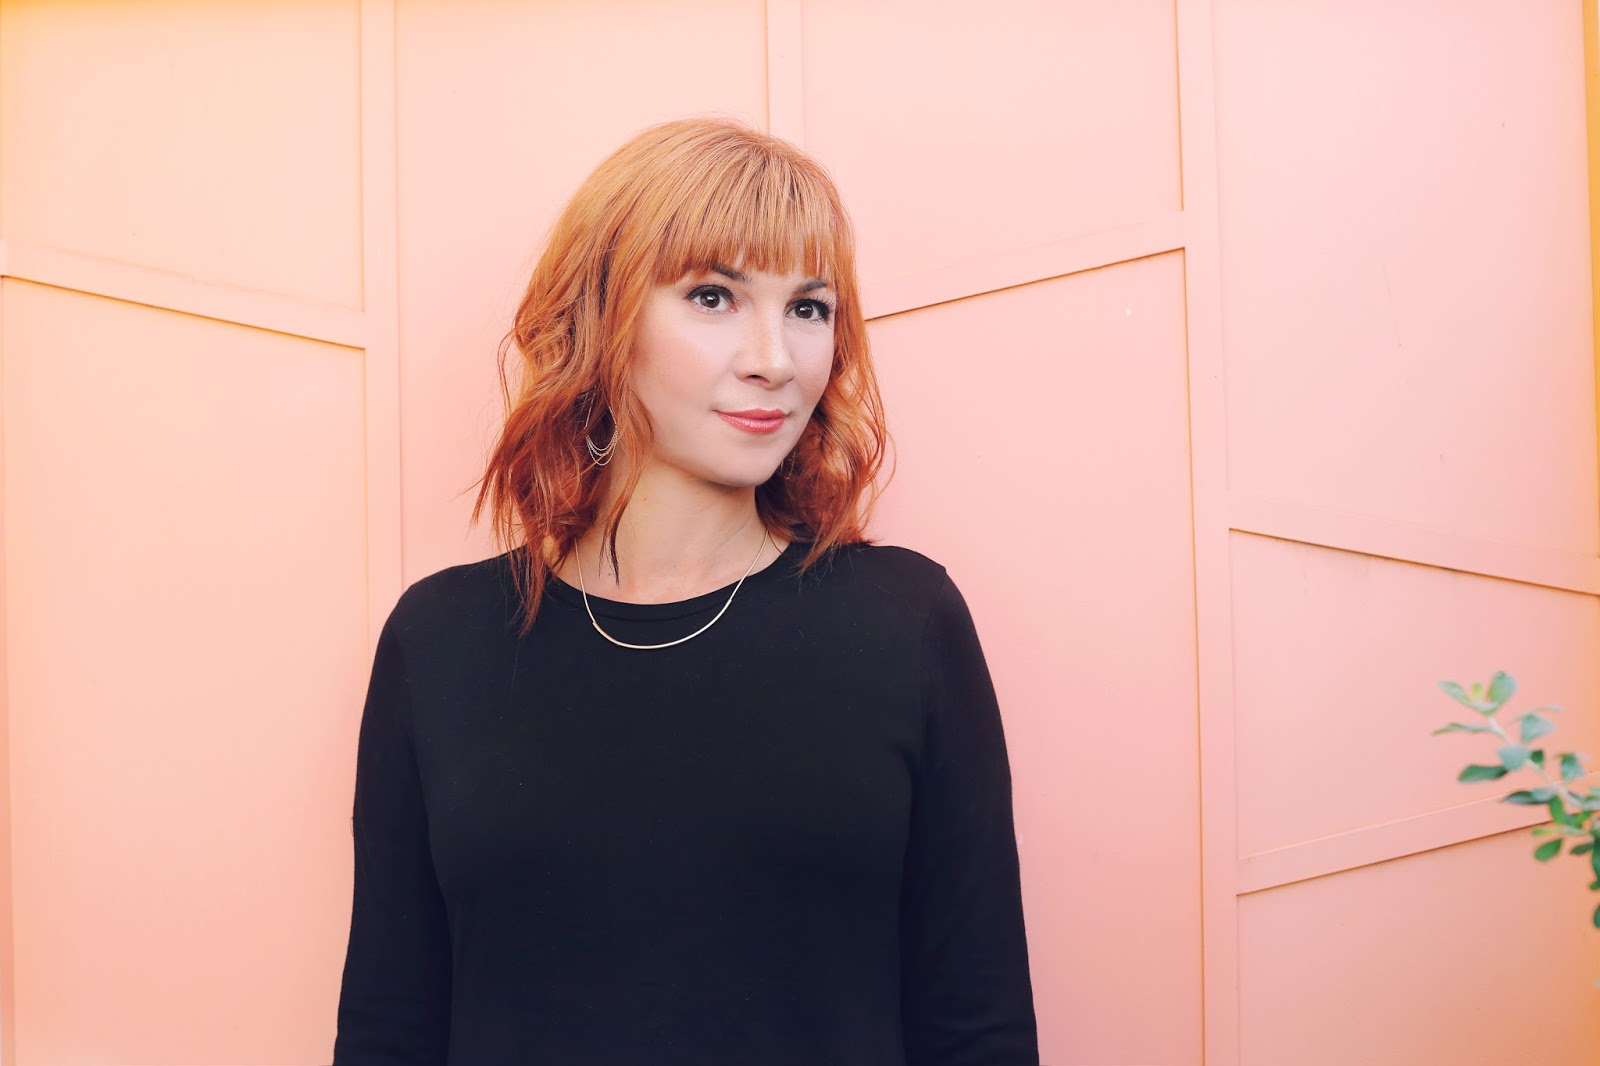 Jays musik blog kim walker smith on my side review kims first single off this album throne room appears next also being the first track that kim has ever released an official music video for stopboris Images